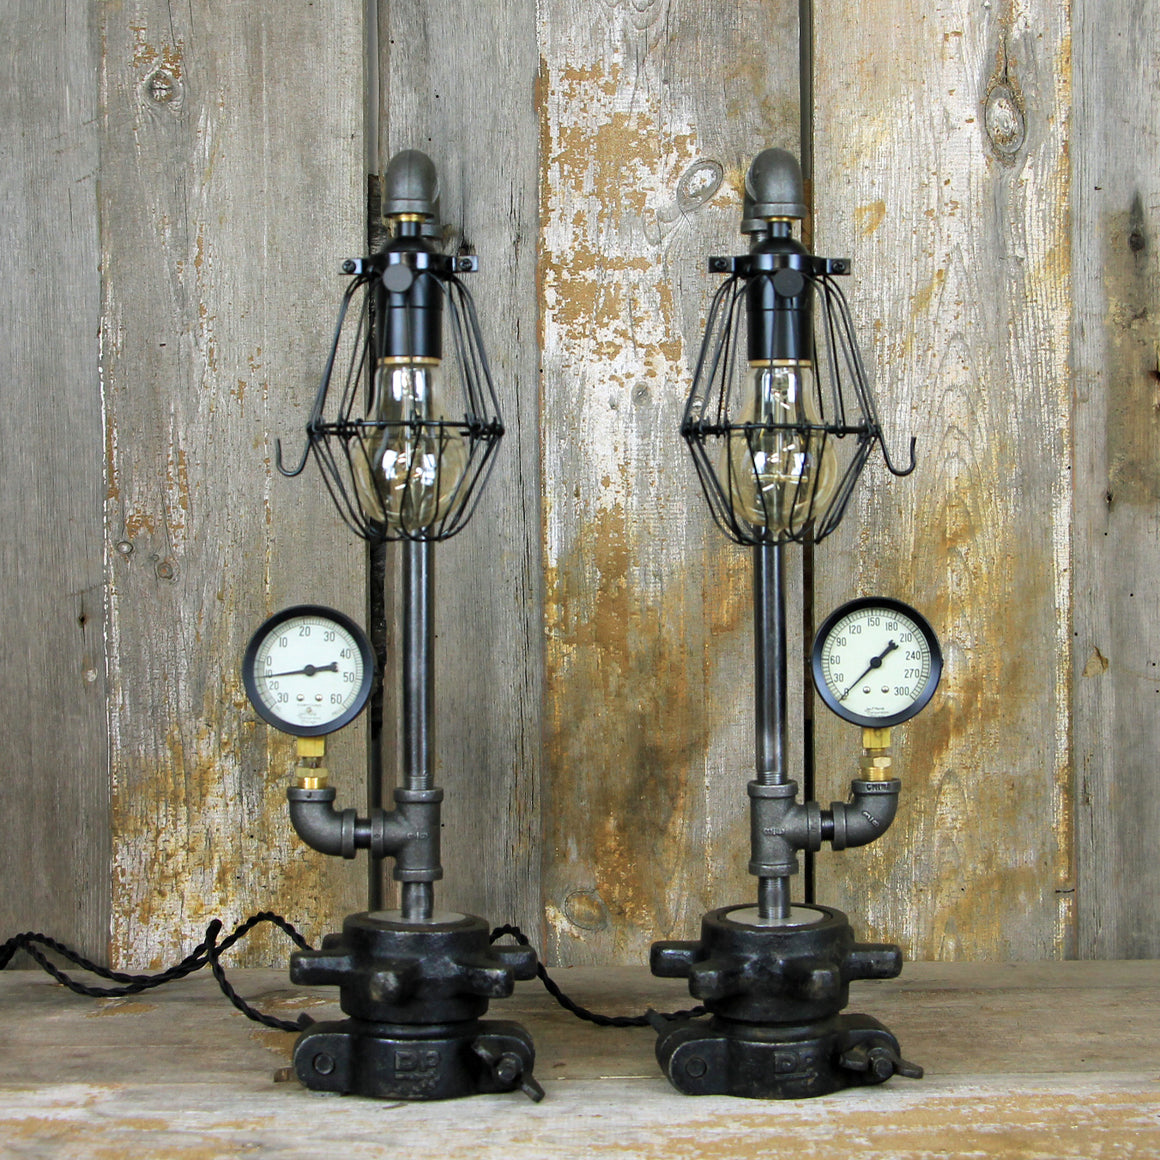 Steampunk Table Lamps with Edison Bulbs - Industrial Table Lamp Pair #146 - The Lighting Works